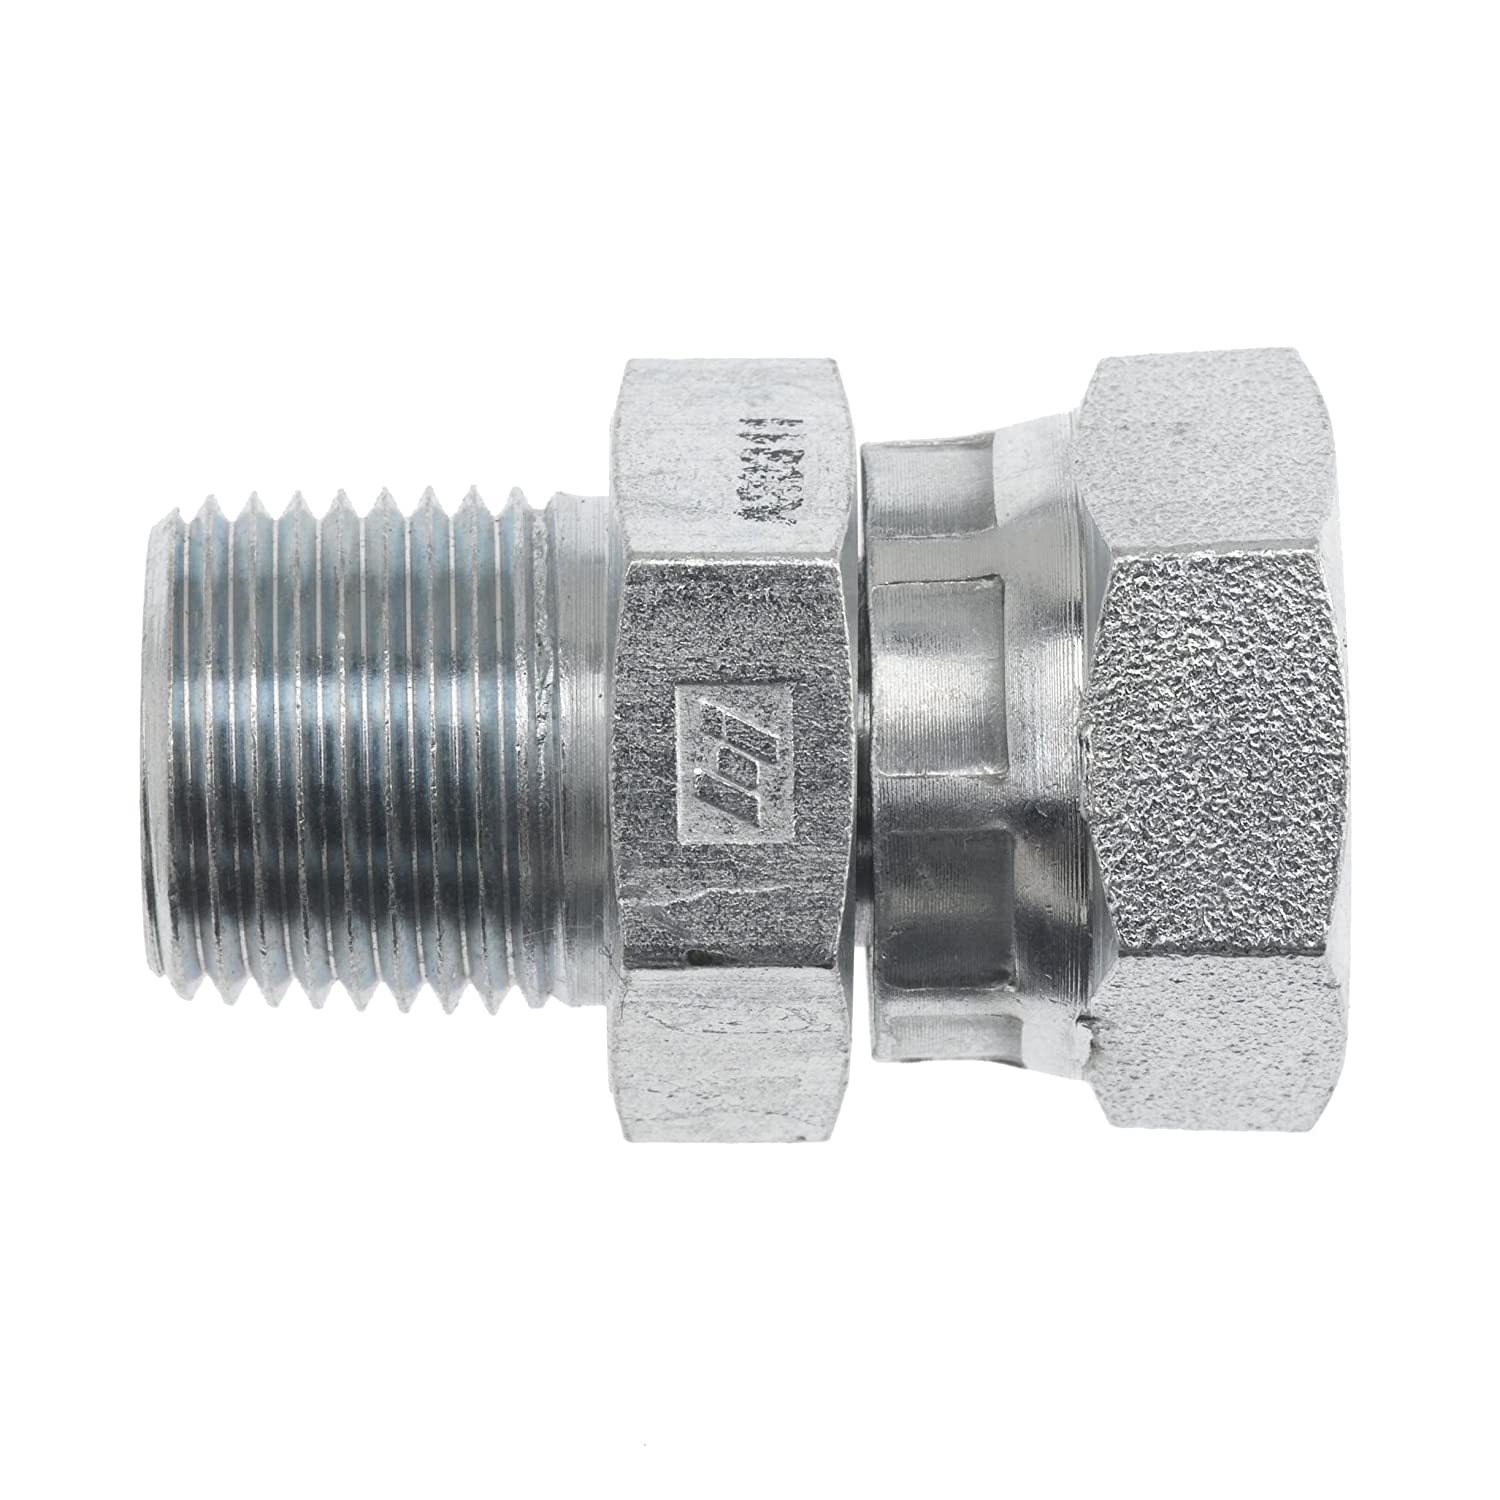 Brennan Industries 1404-12-12-SS Stainless Steel Straight Adapter 3//4-14 Male NPTF x 3//4-14 Female NPSM Thread